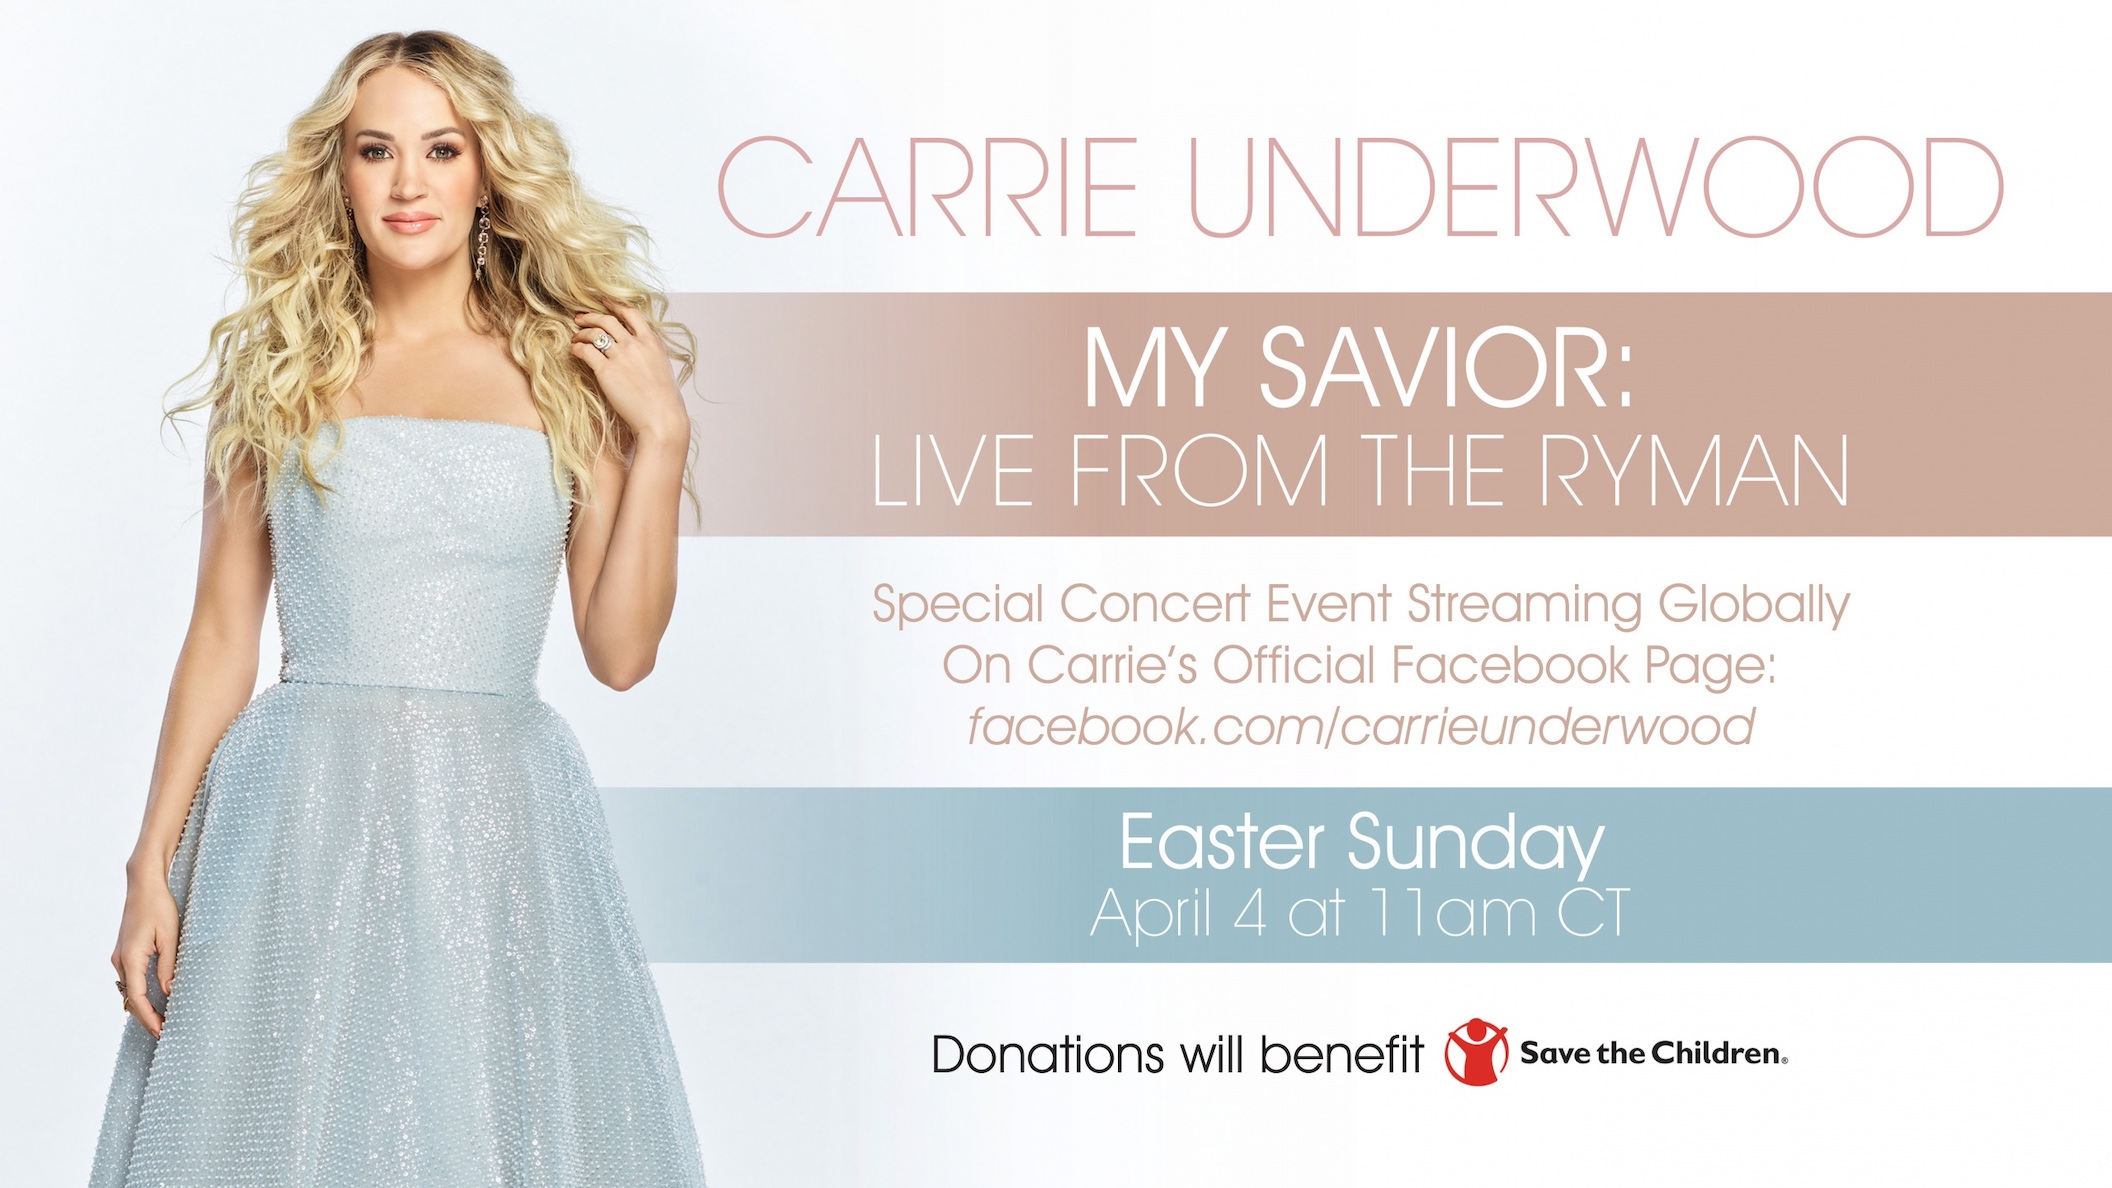 Catch Carrie Underwood live in concert. (Image courtesy of Universal Music Group Nashville)